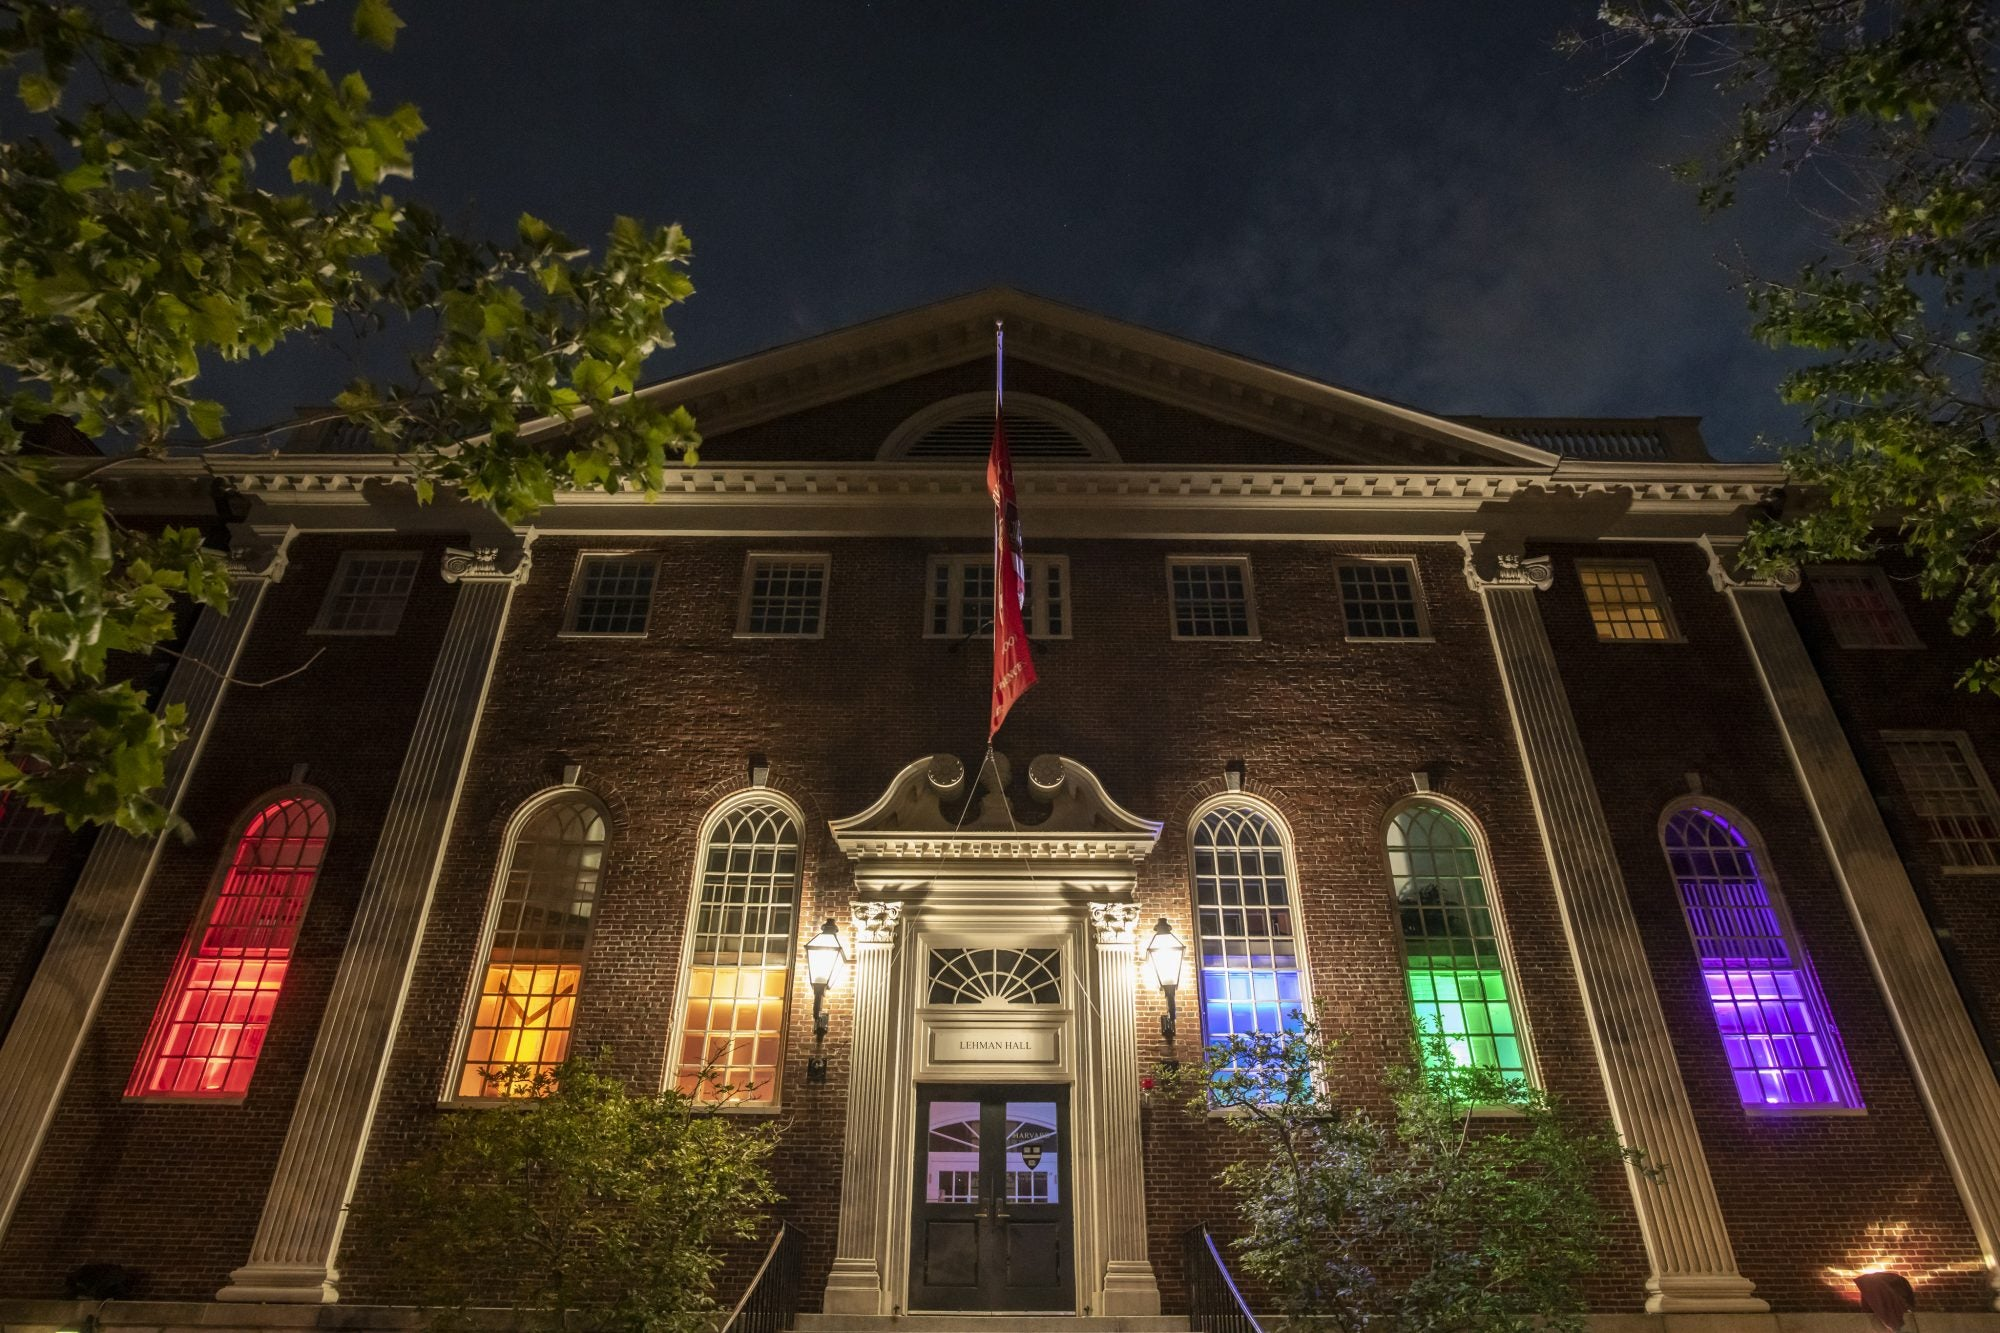 Rainbow lights in the windows of a brick building